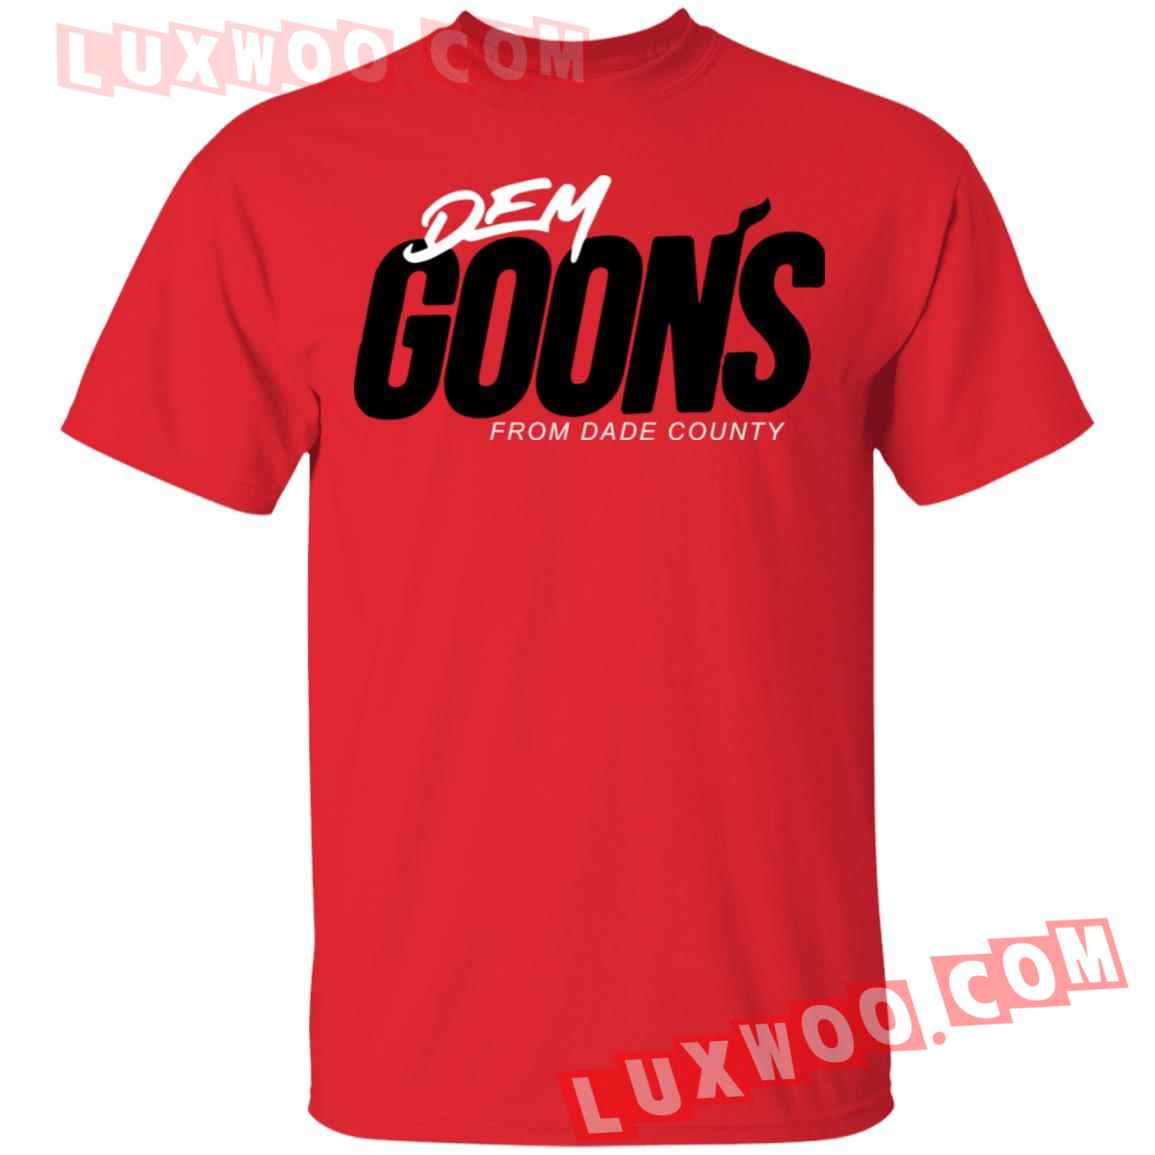 Dem Goons From Dade County Shirt